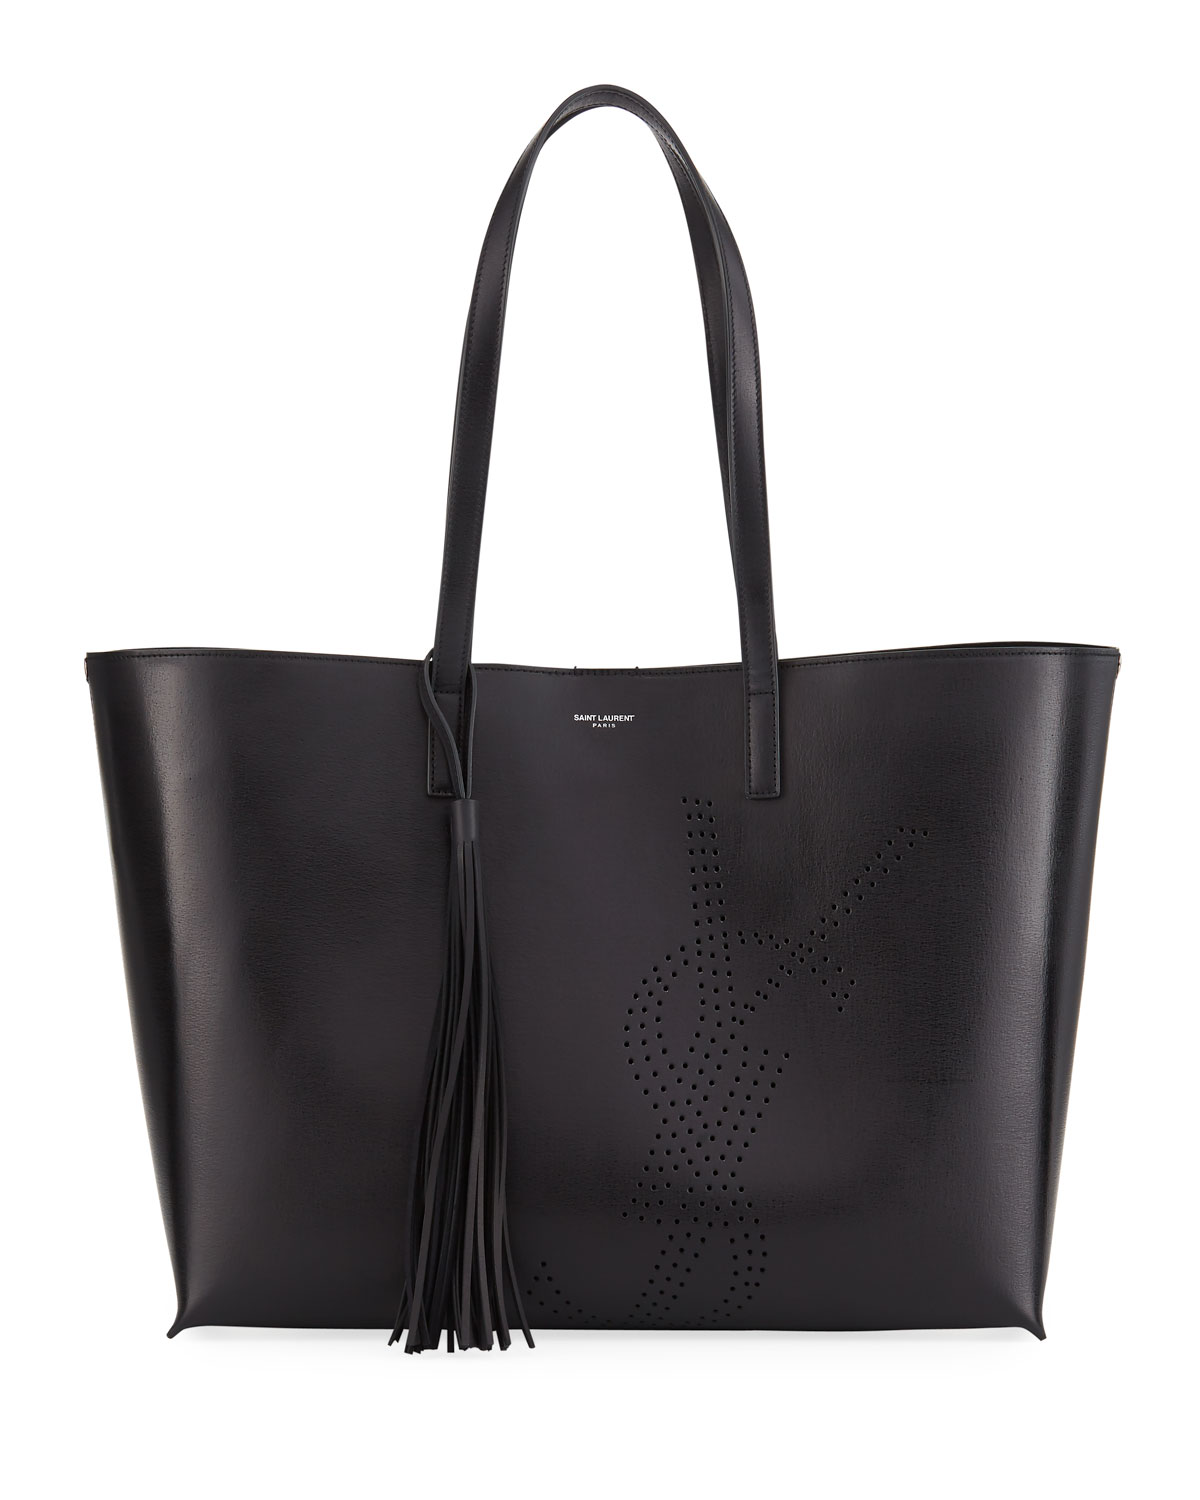 0608bc007738b Saint LaurentLarge East-West Perforated Leather Shopping Tote Bag